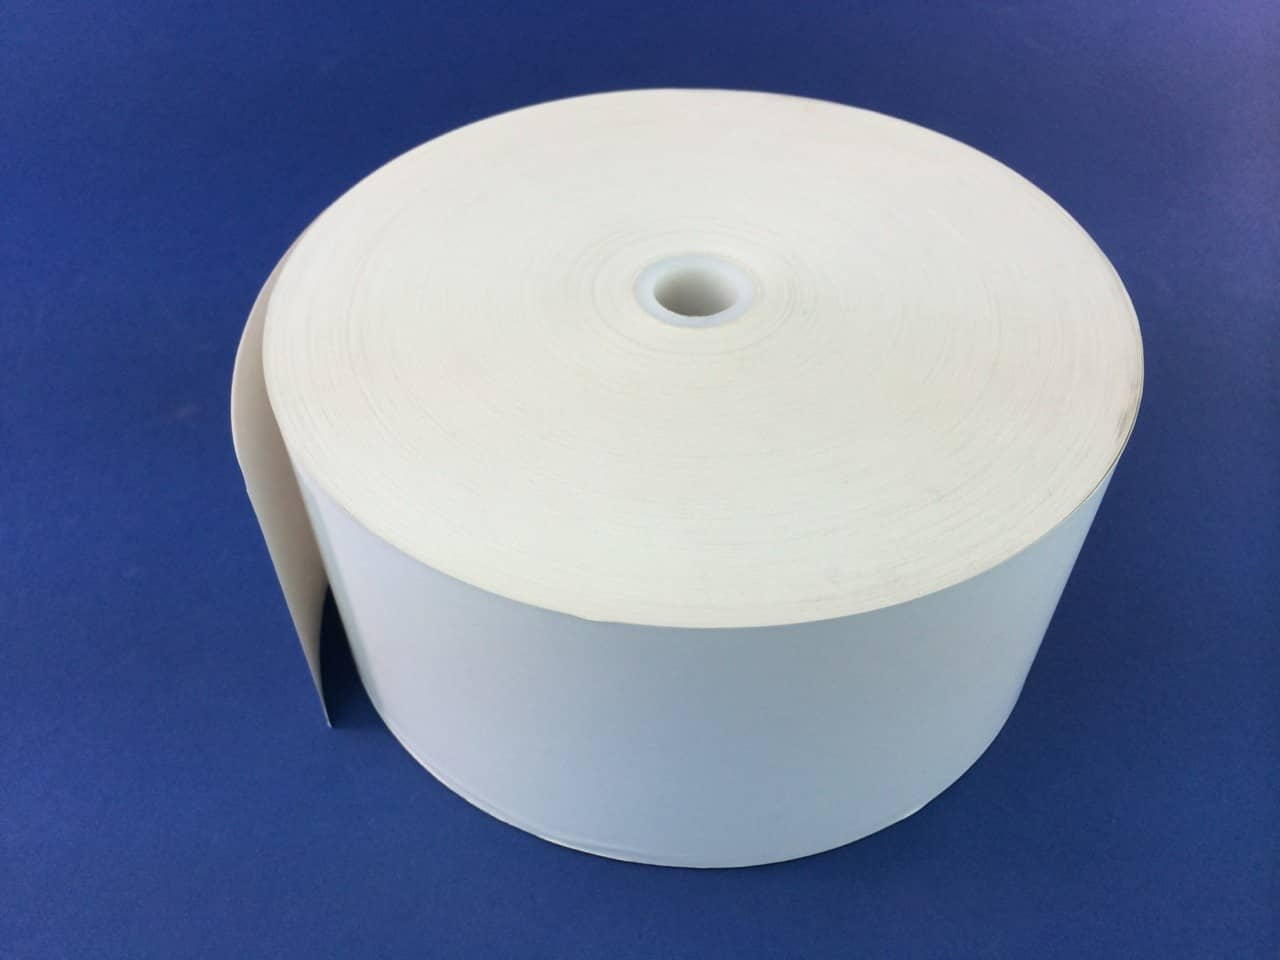 HYOSUNG TRANAX ATM THERMAL RECEIPT PAPER ROLLS  ~FAST FREE SHIPPING~ 2